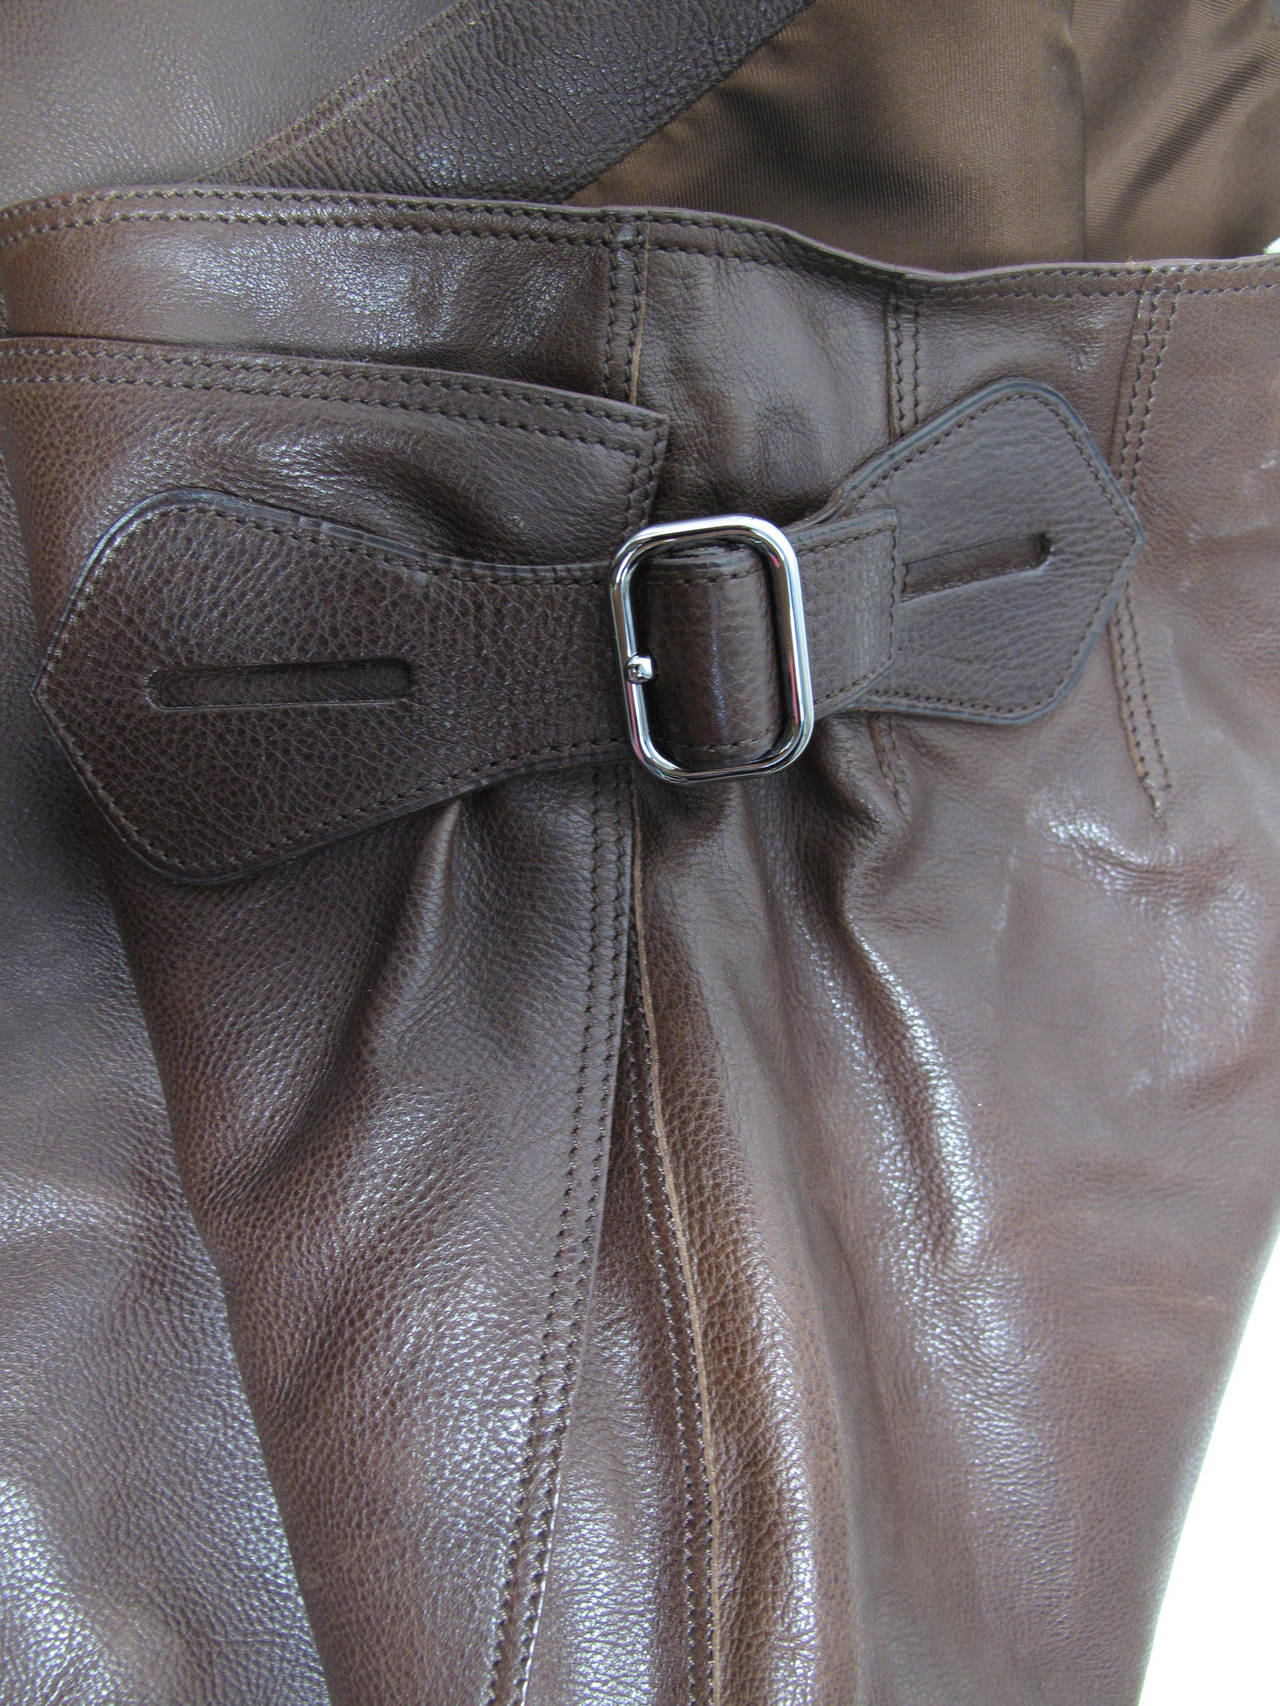 Hermes Rich Dark Brown Leather Wrap Skirt with Buckle 4